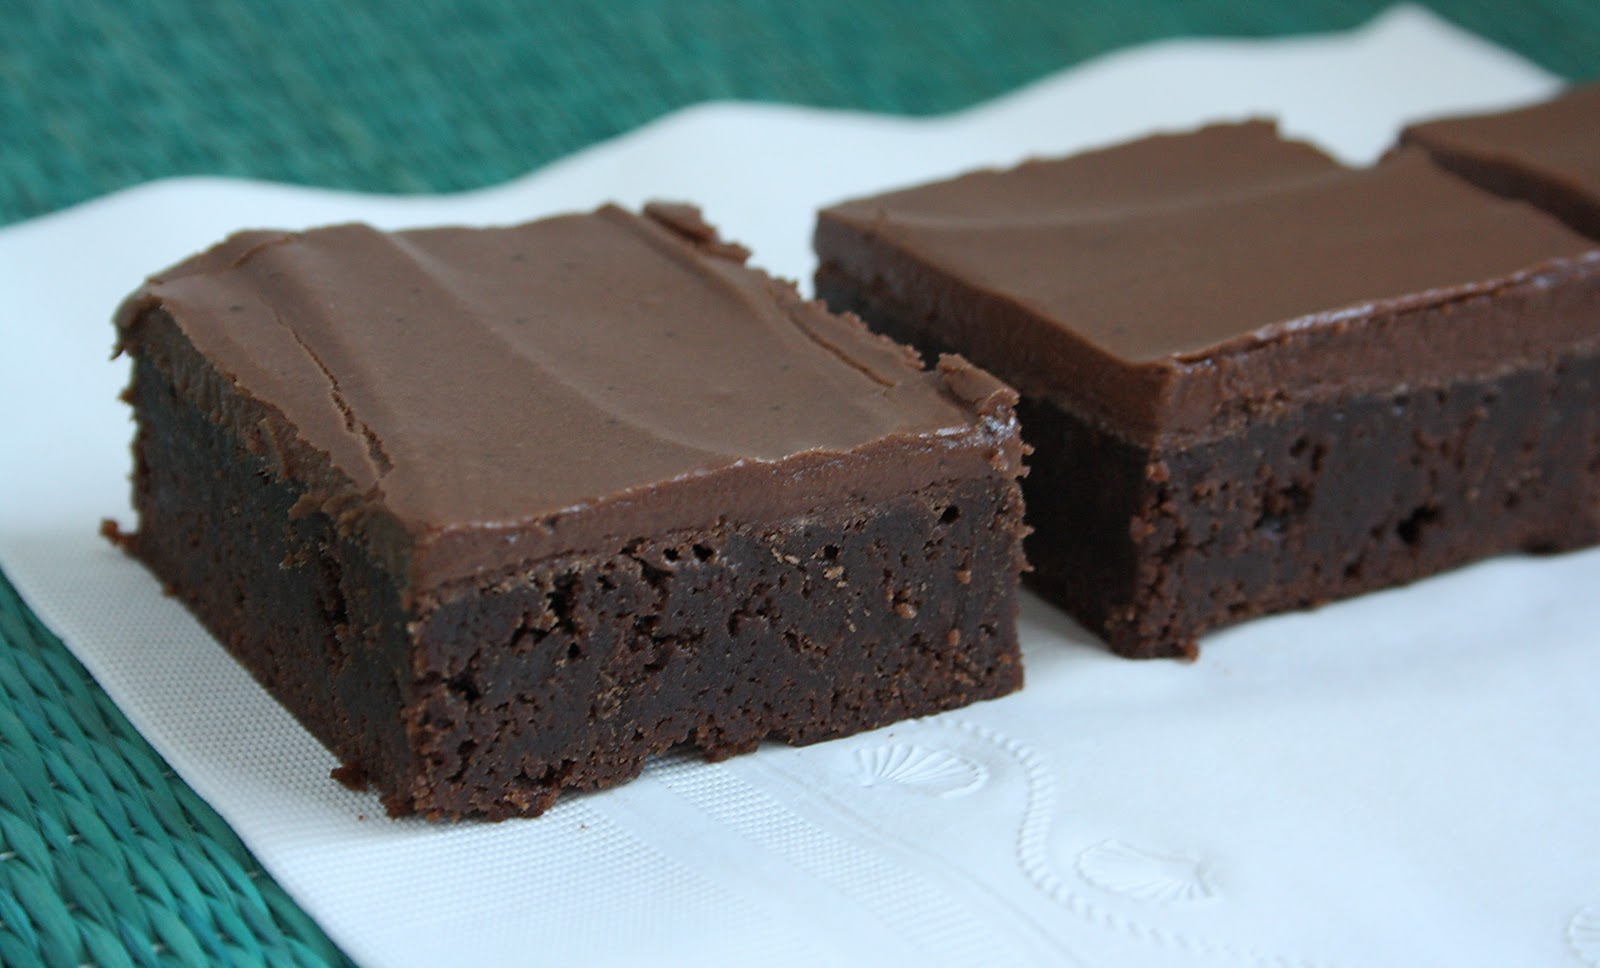 ... Diva: Helping Utah Families Live on Less: The Best Classic Brownies